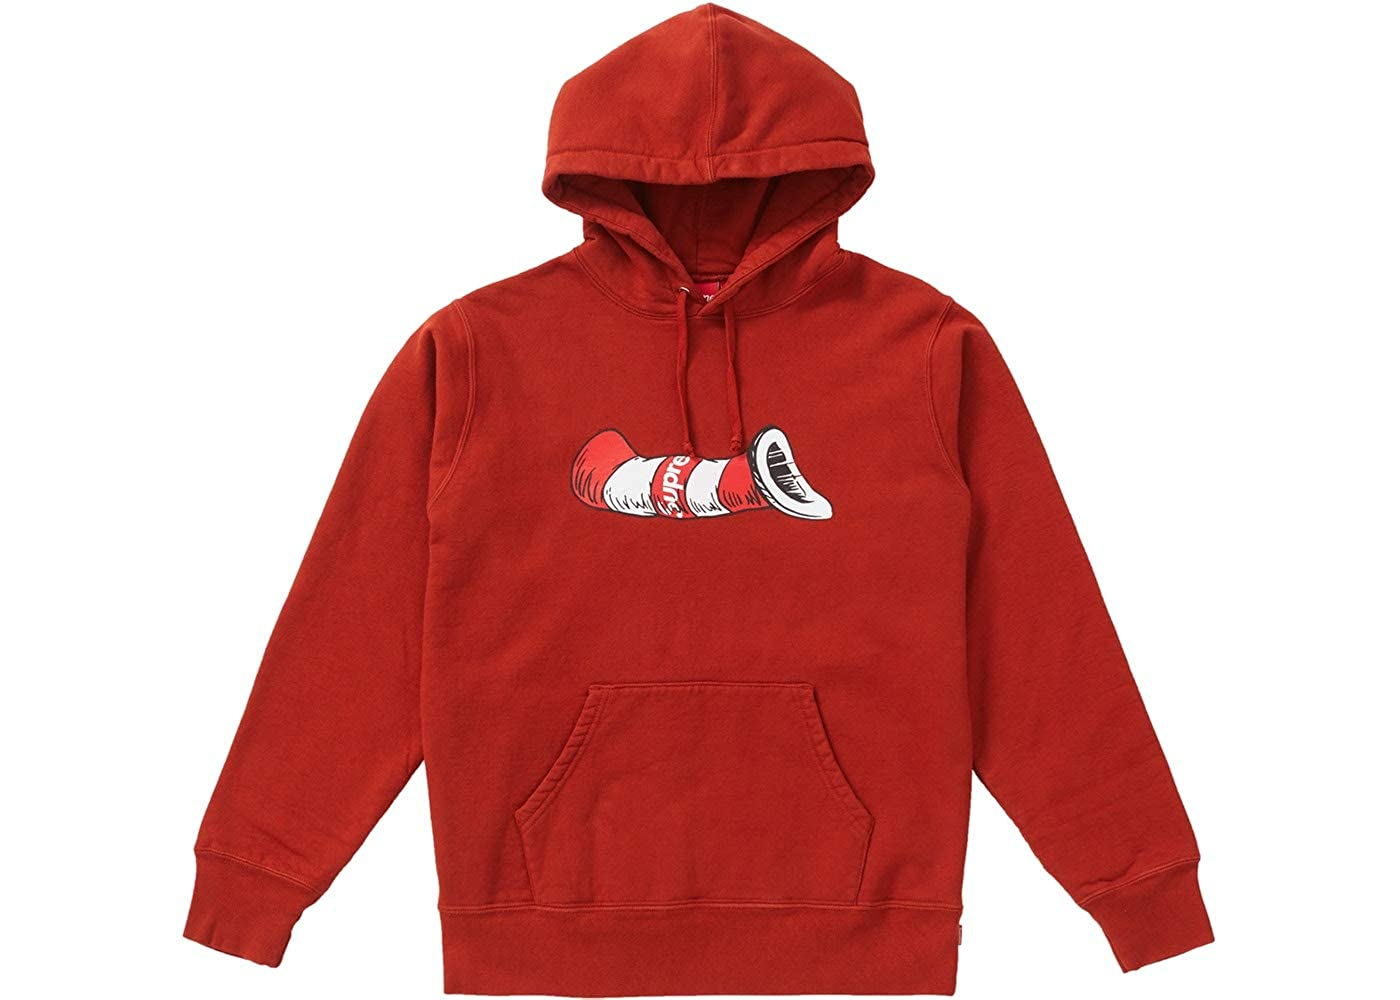 Amazon.com  SupremeNewYork Supreme Cat in The Hat Hoodie Hooded Sweatshirt  Red FW18 100% Authentic Real -Designer Sold Out Rare-  Clothing 7c04f5497f01